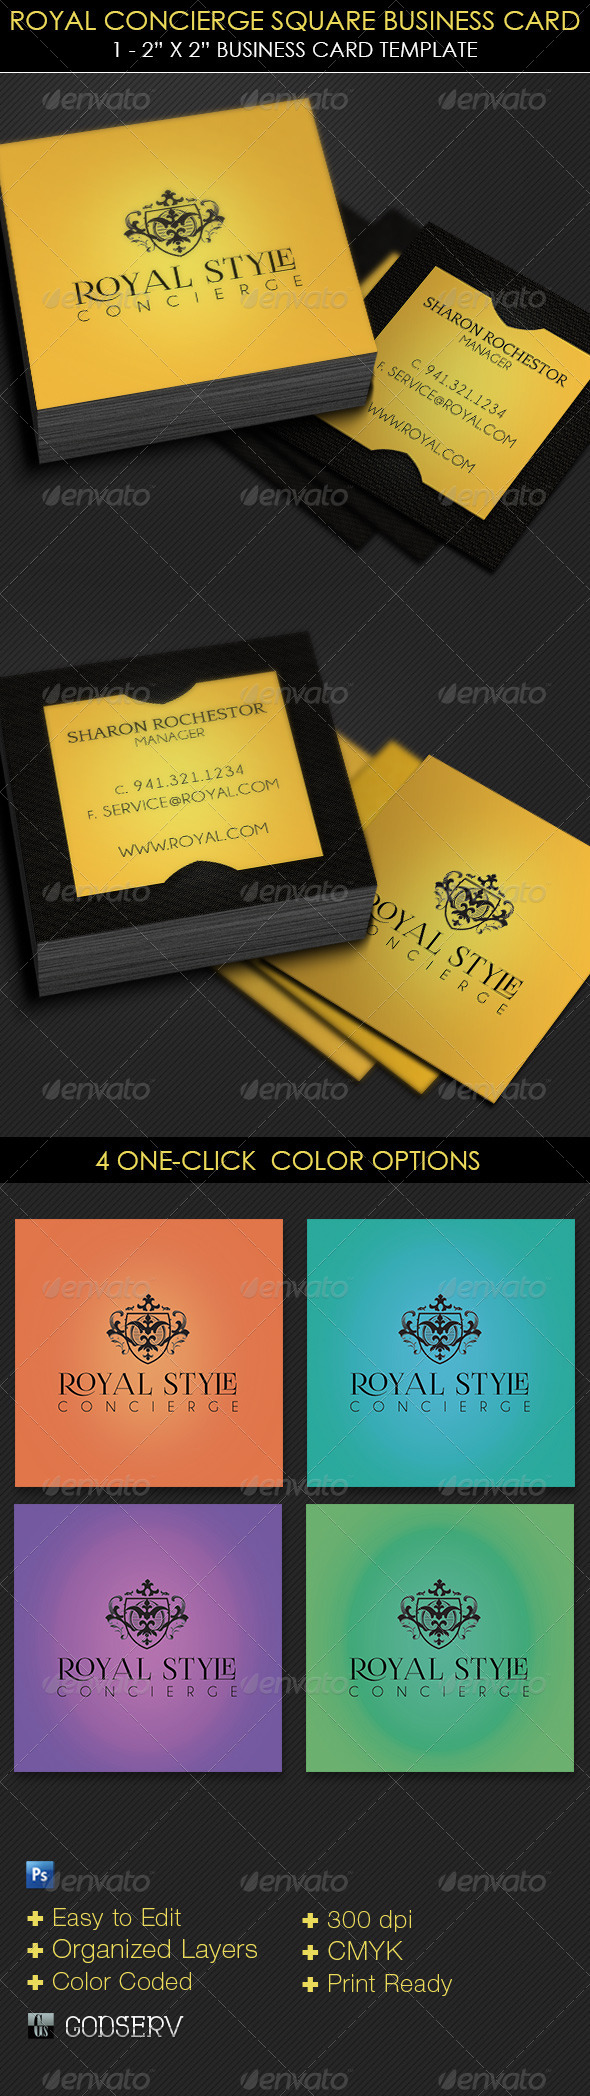 Royal Concierge Square Business Card Template - Industry Specific Business Cards